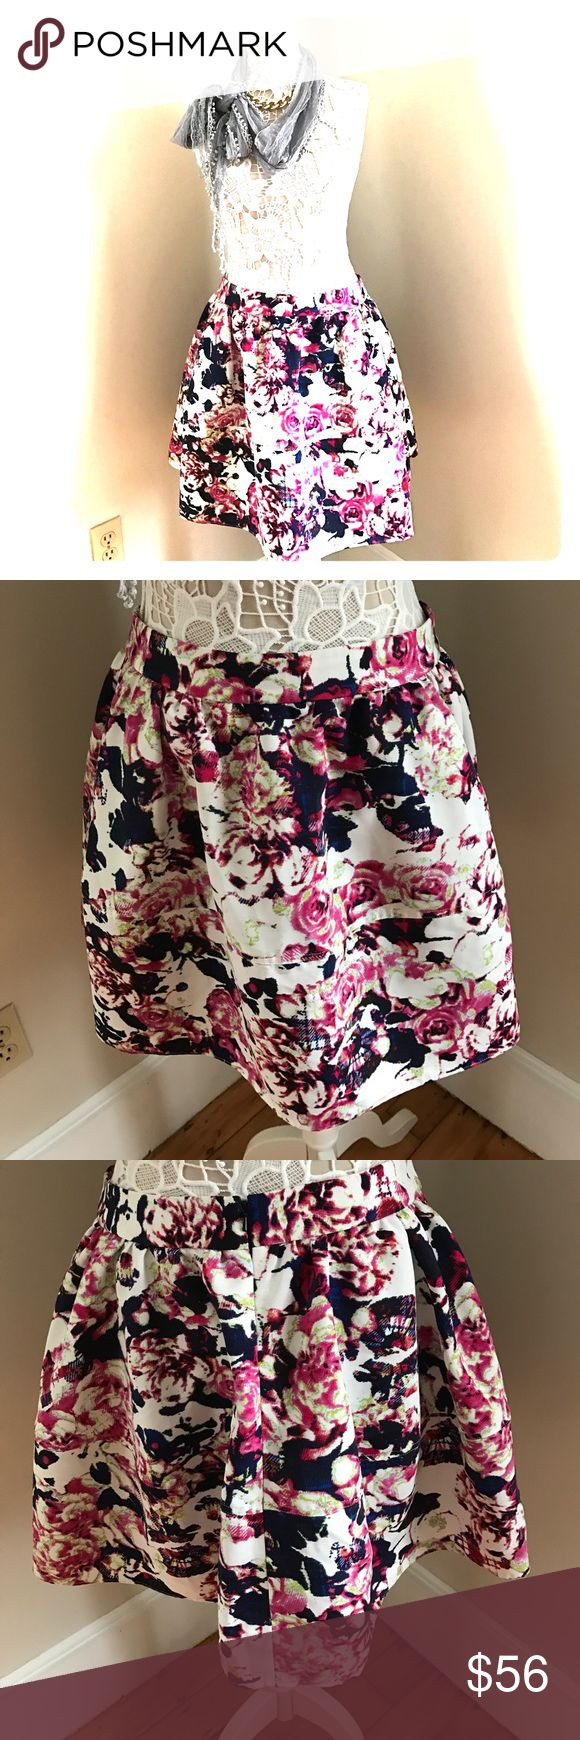 Express flower skirt This beautiful chic skirt is yours for the taking, dress me up anytime Express Skirts Midi